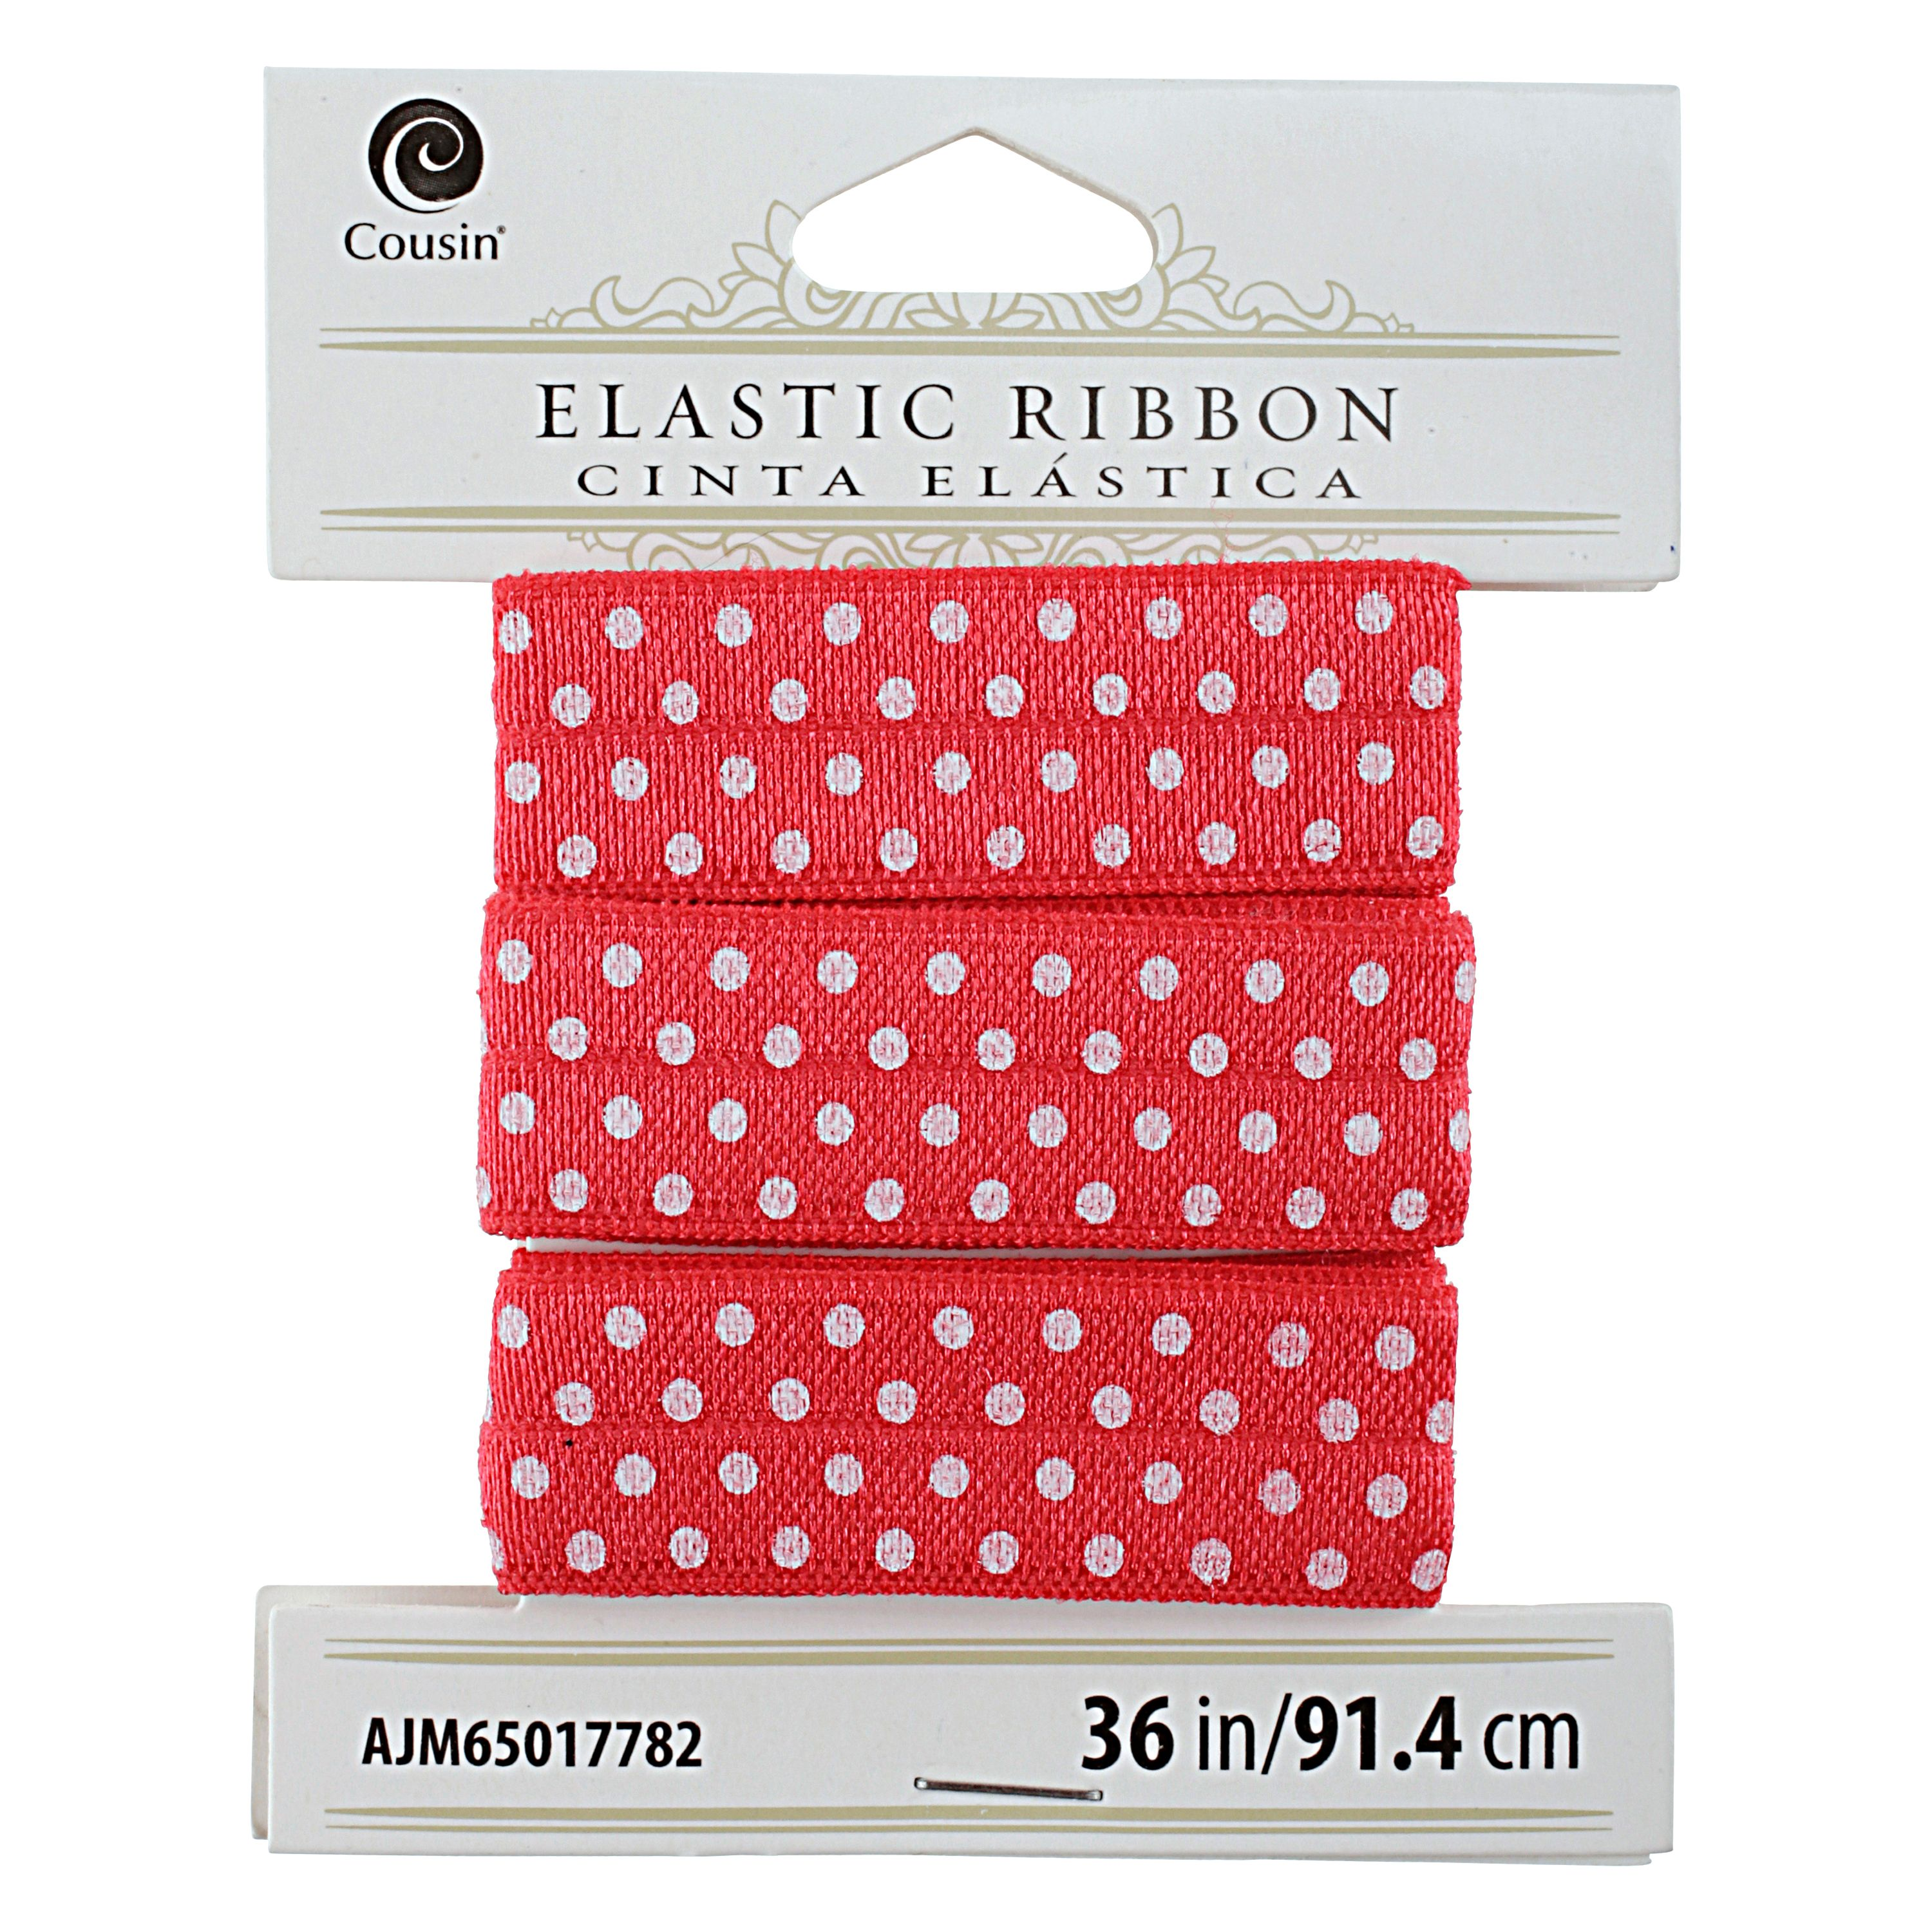 Cousin Elastic Ribbon 36 inches Shimmery Red White Dots